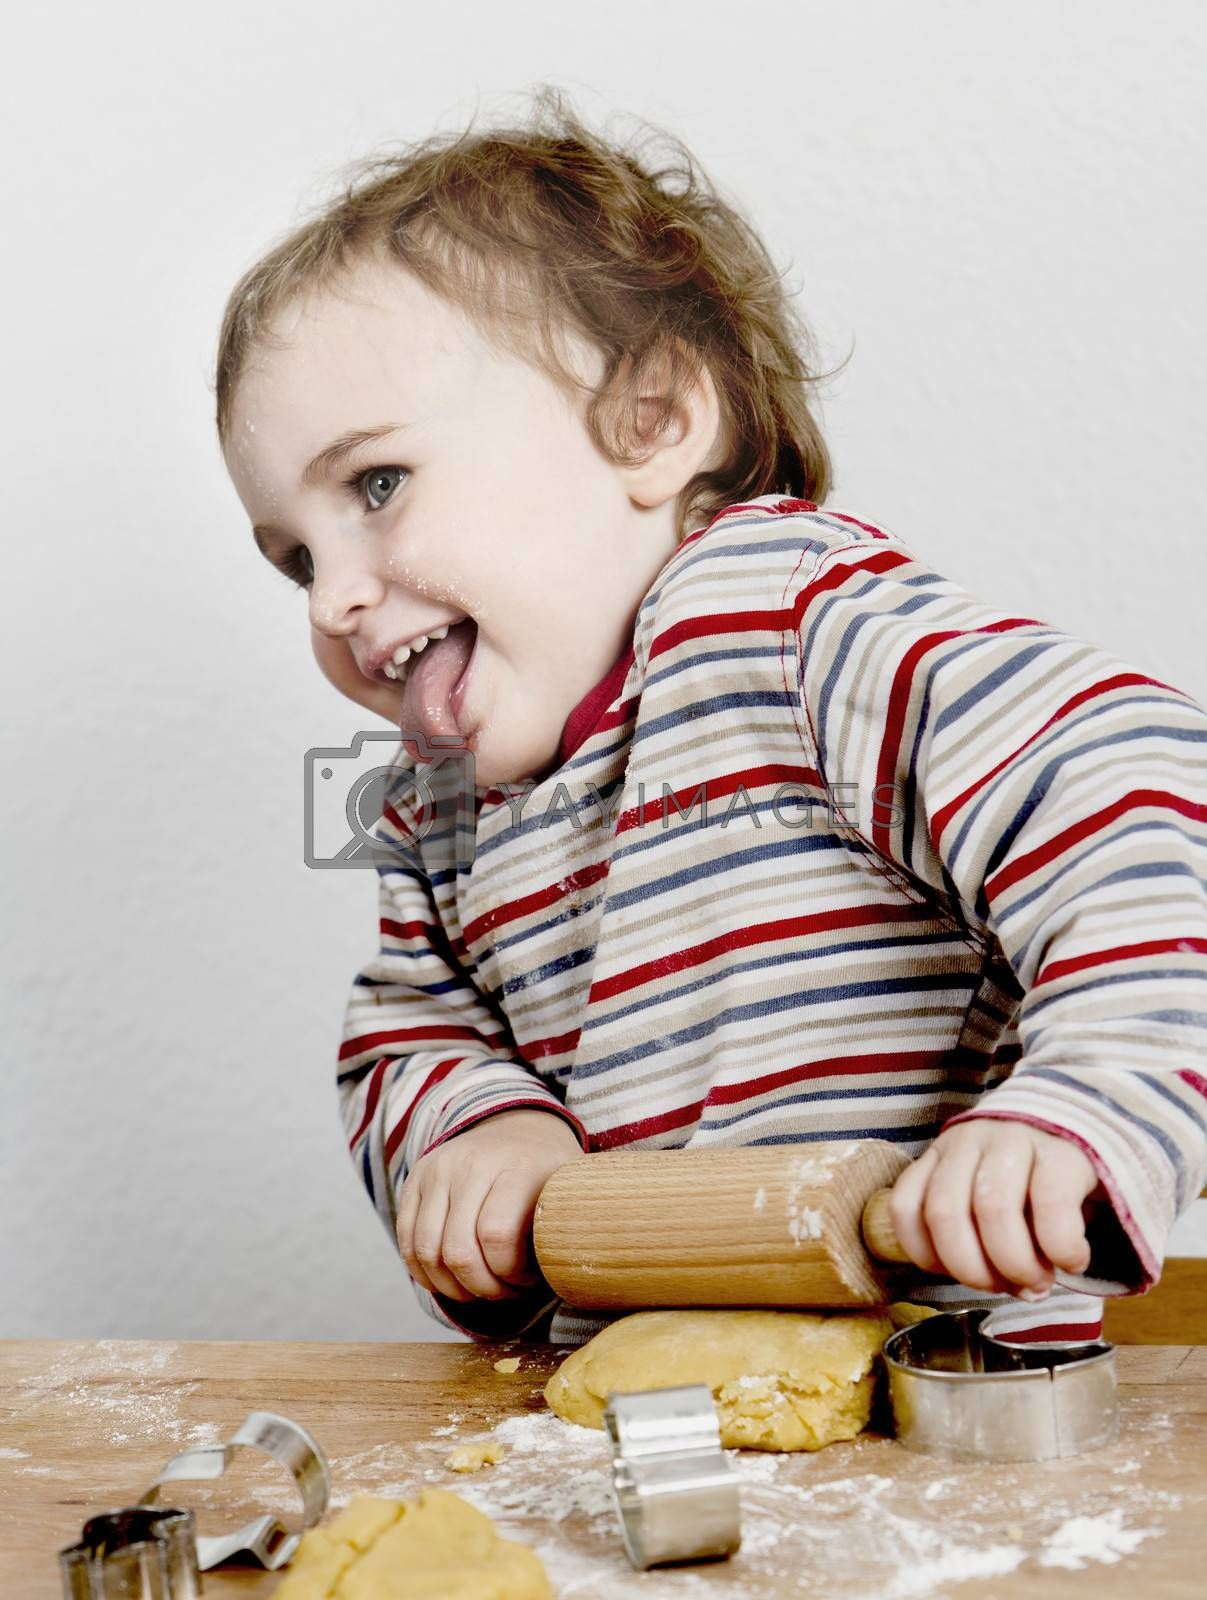 cute, laughing child with dough and rolling ping grey background. horizontal image